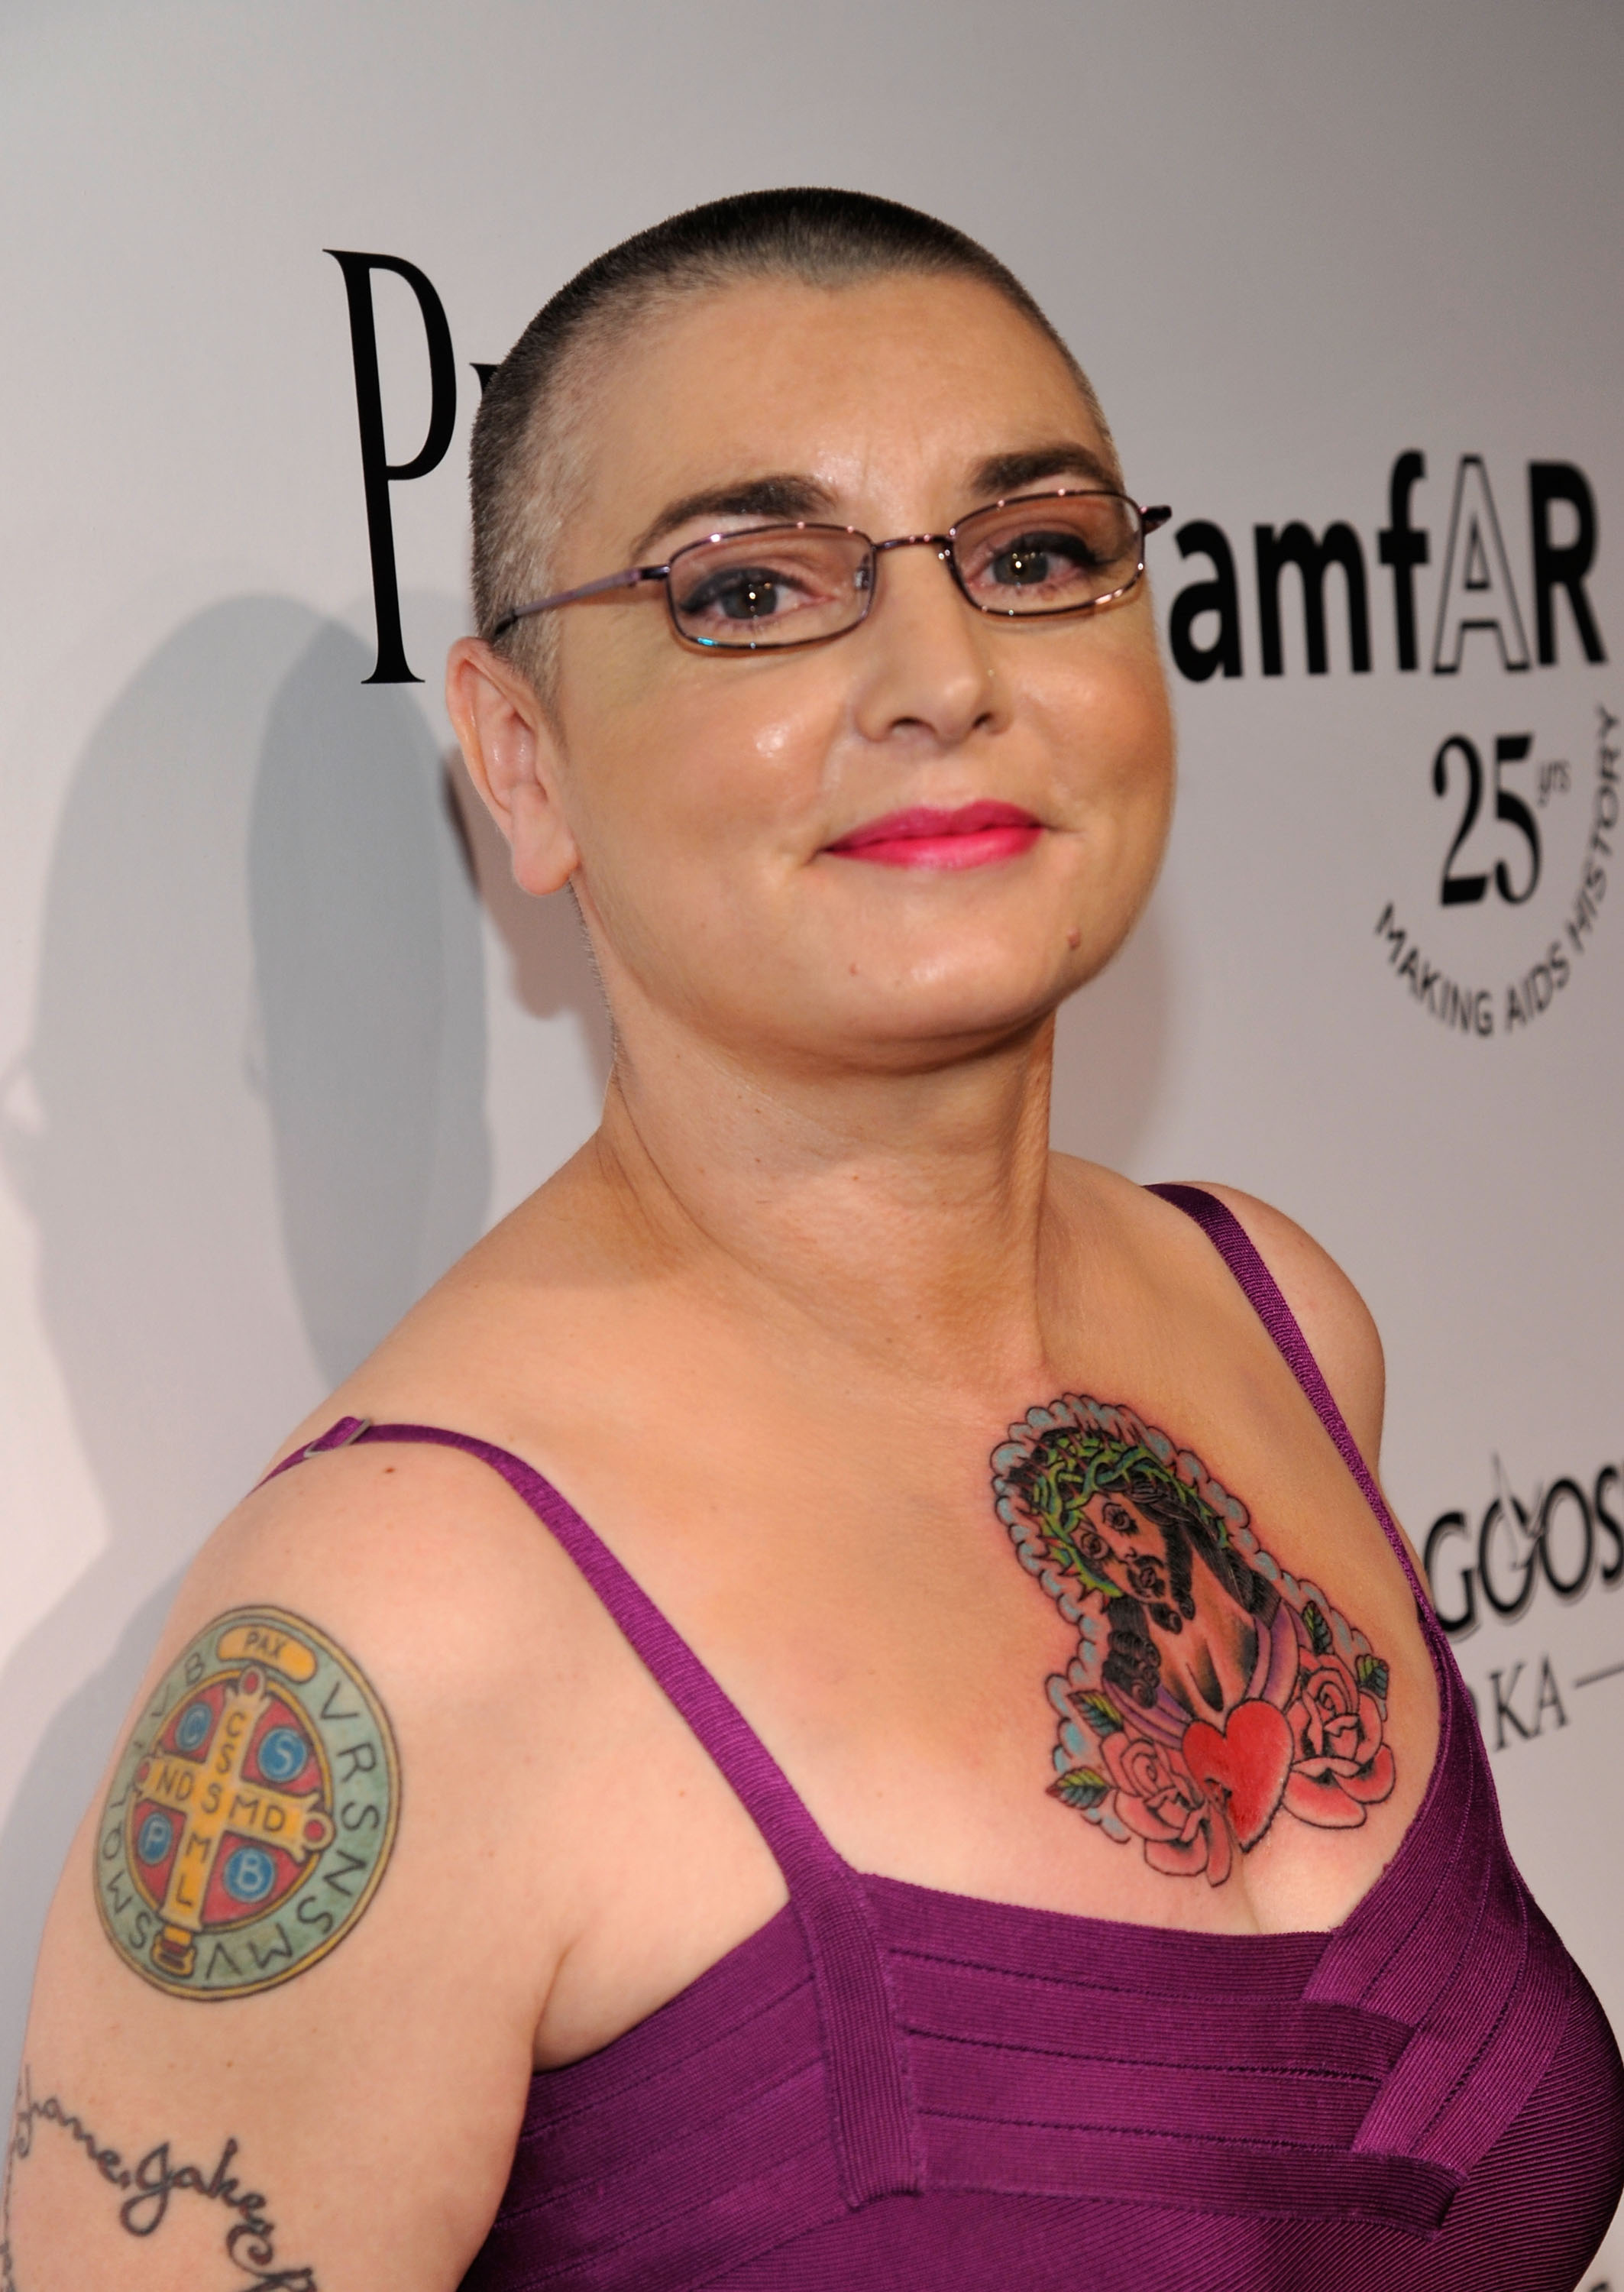 Singer Sinead O'Connor attends the The 2011 amfAR Inspiration Gala held at the Chateau Marmont on October 27, 2011 in Los Angeles, California.